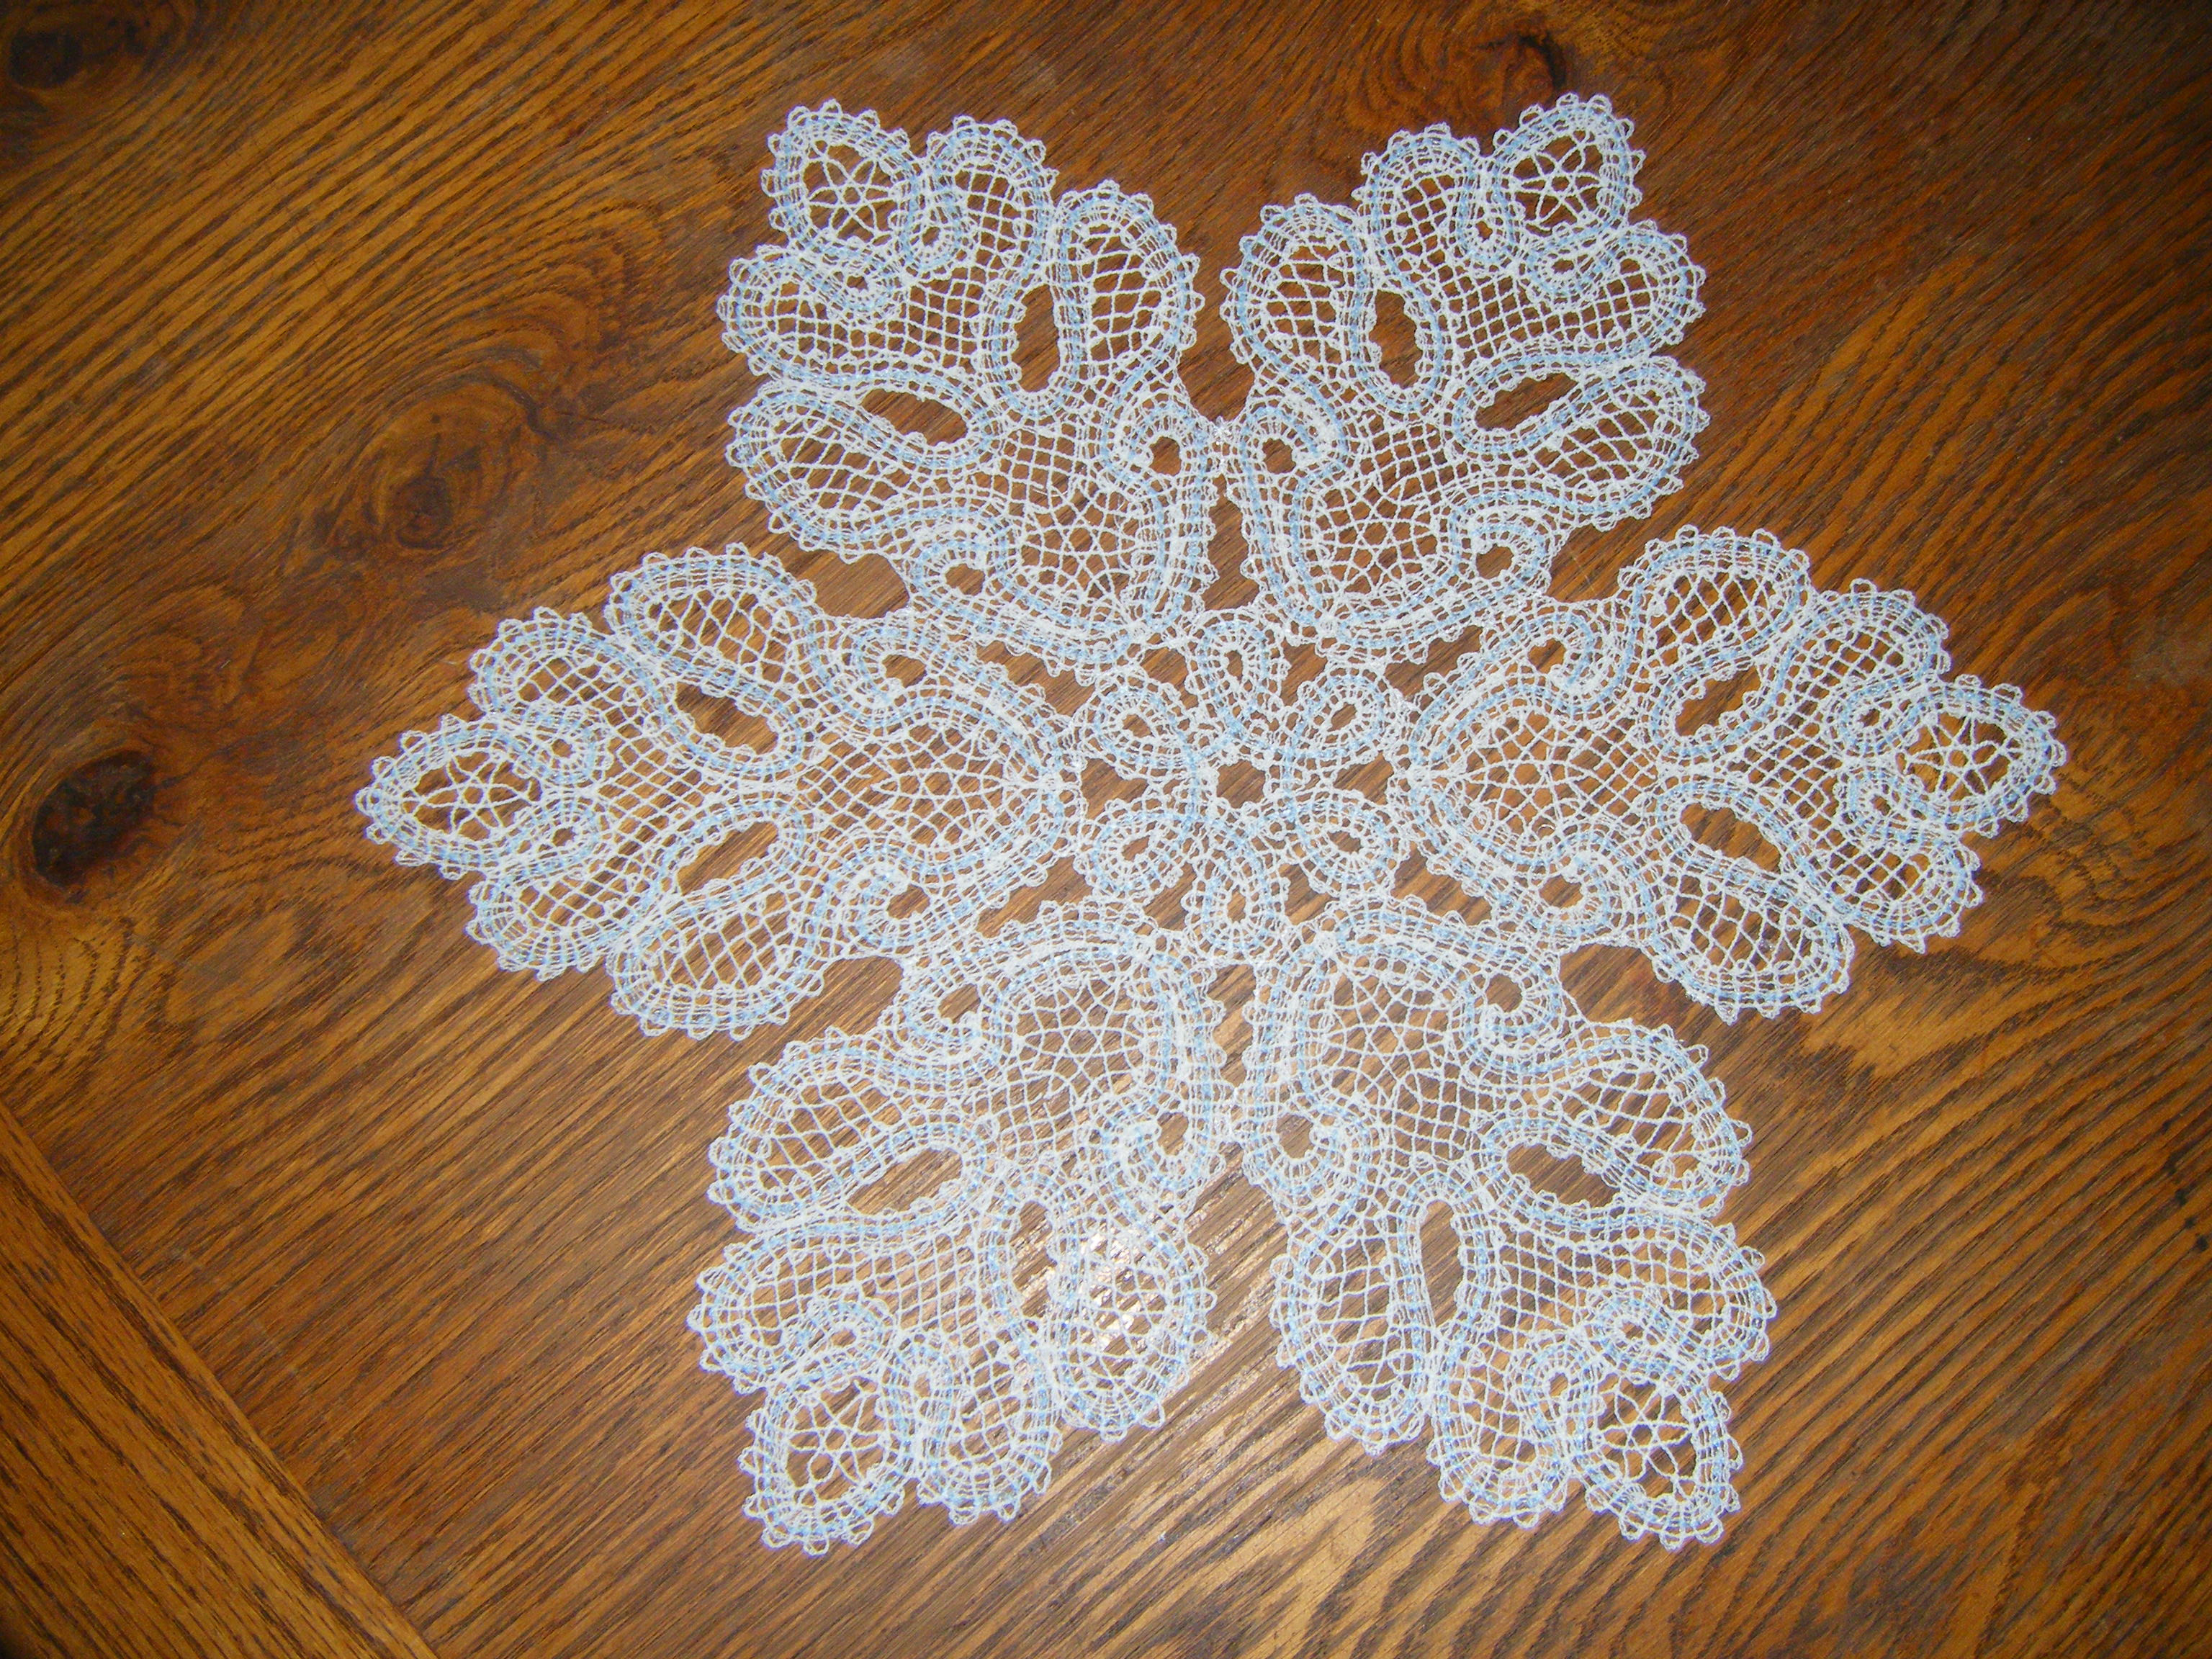 Free Crochet Doily Patterns Best Of How to Crochet Snowflake Patterns 33 Amazing Diy Of Charming 46 Pics Free Crochet Doily Patterns